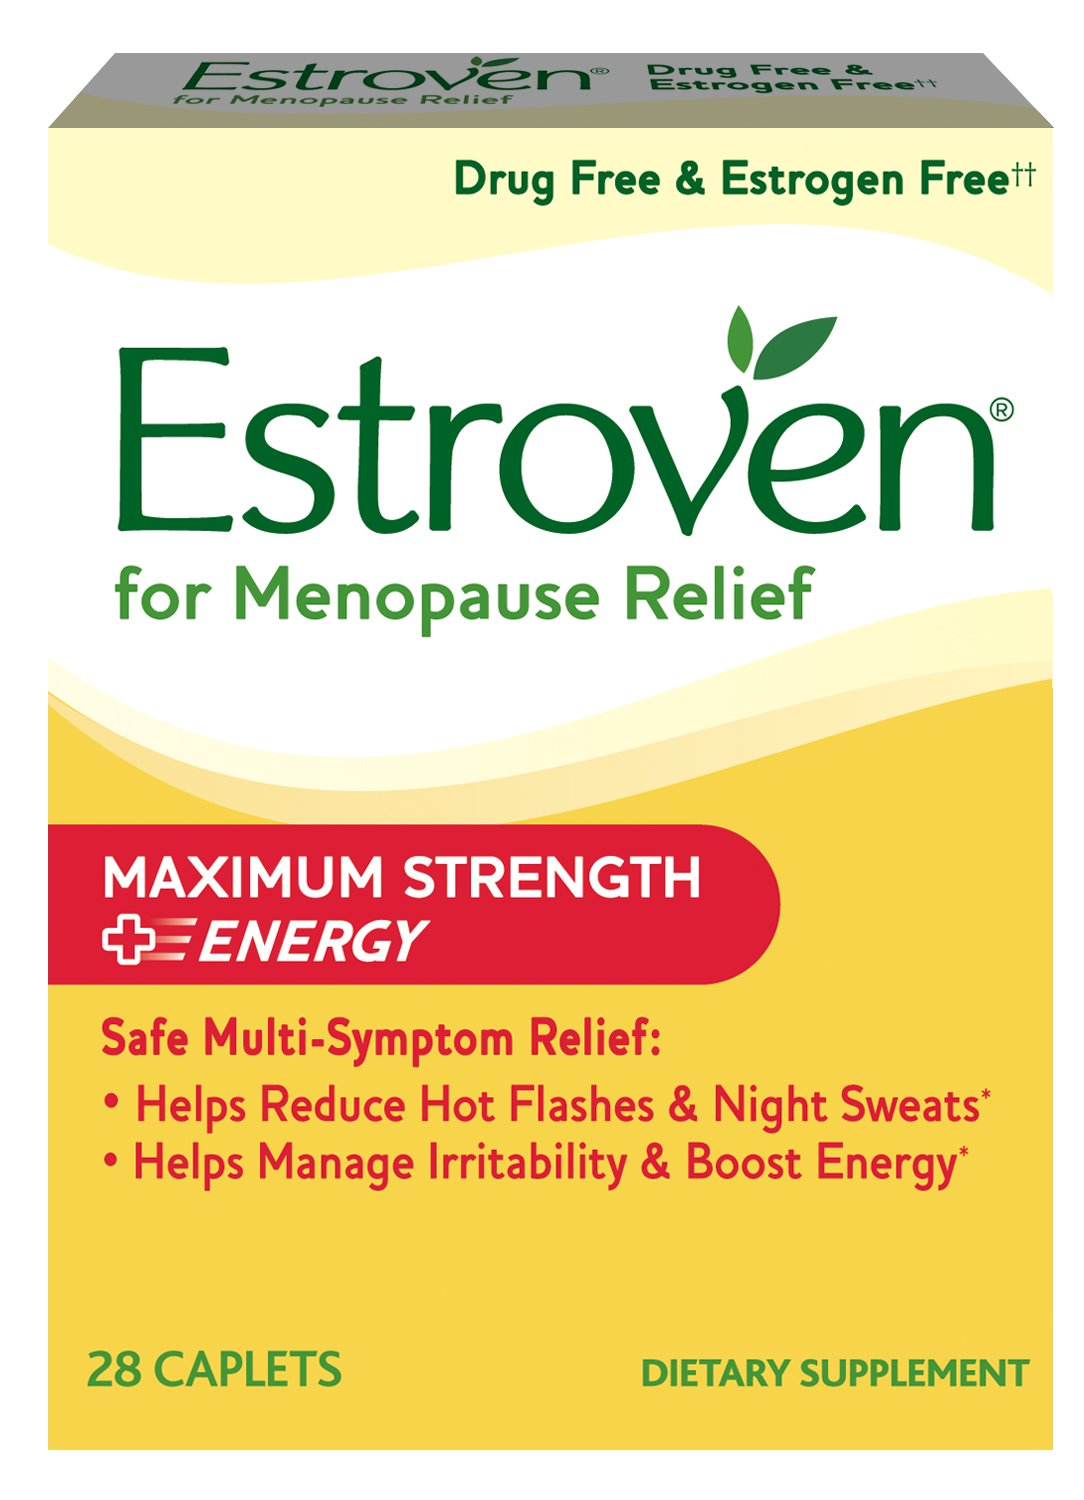 Estroven Maximum Strength + Energy formulated for Menopause Symptom Relief* – Helps Reduce Hot Flashes and Night Sweats* – Helps Manage Irritability and Boost Energy* - 28 Caplets